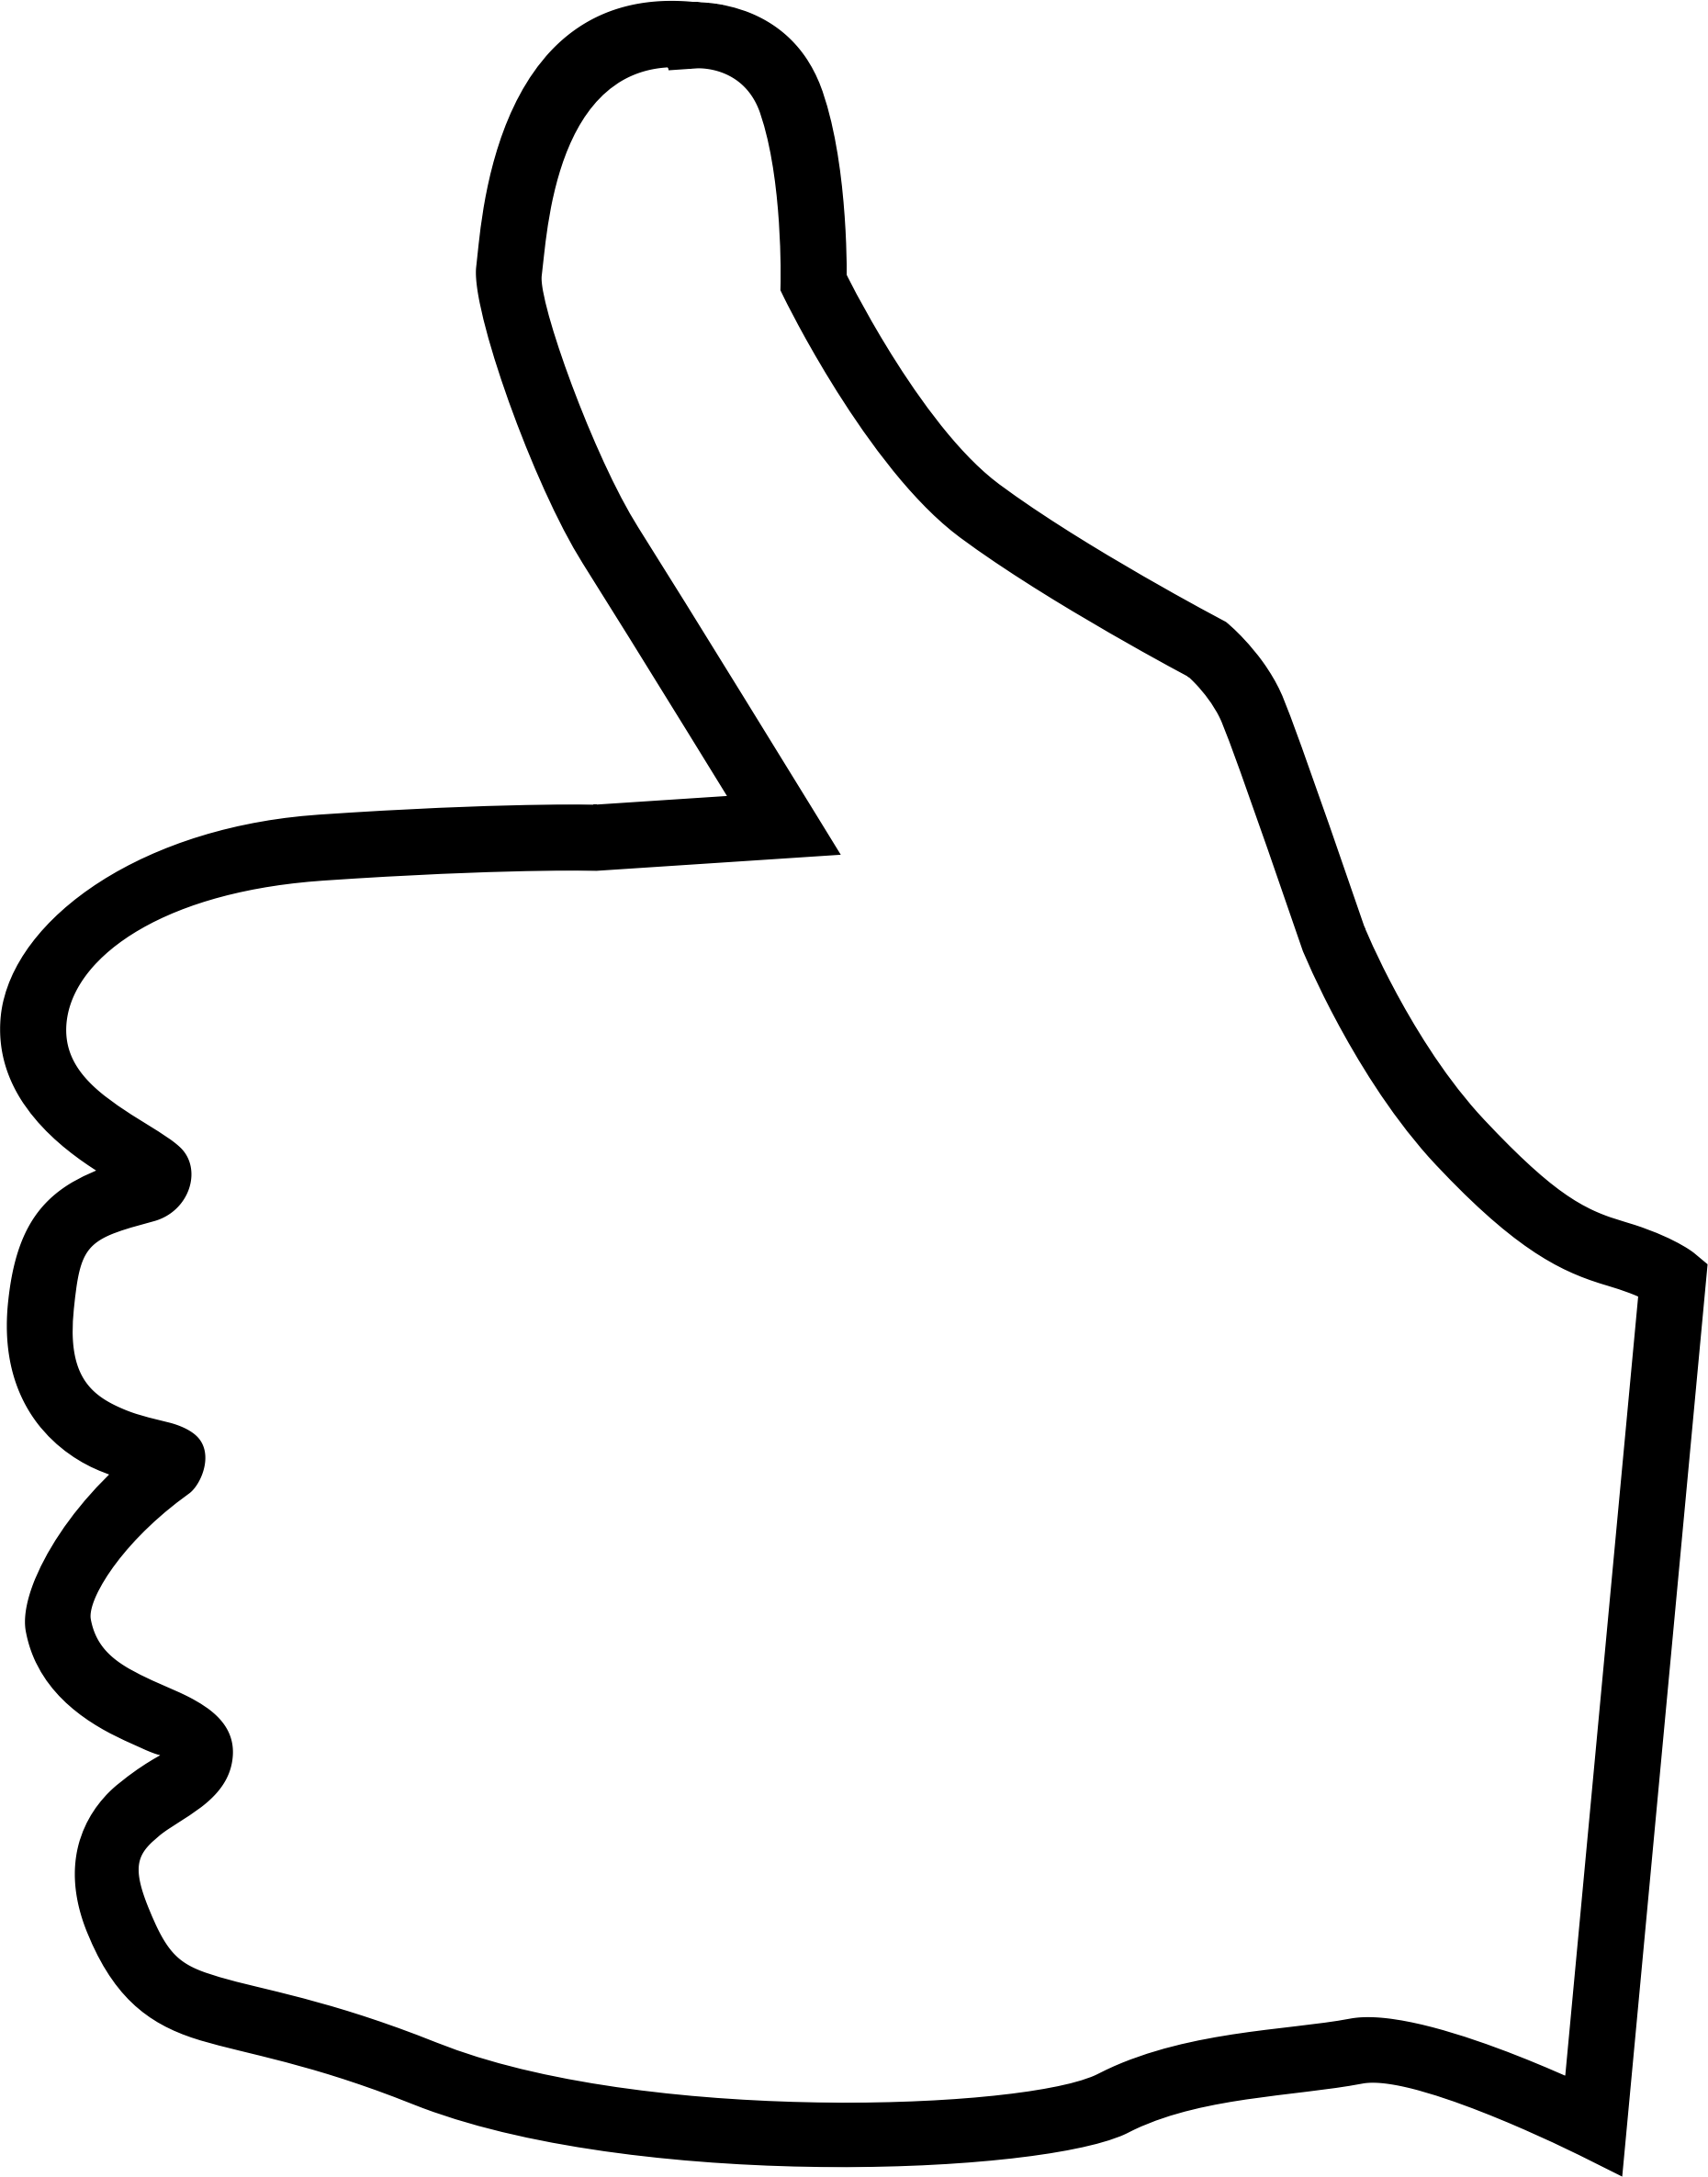 Clipart - Thumbs Up